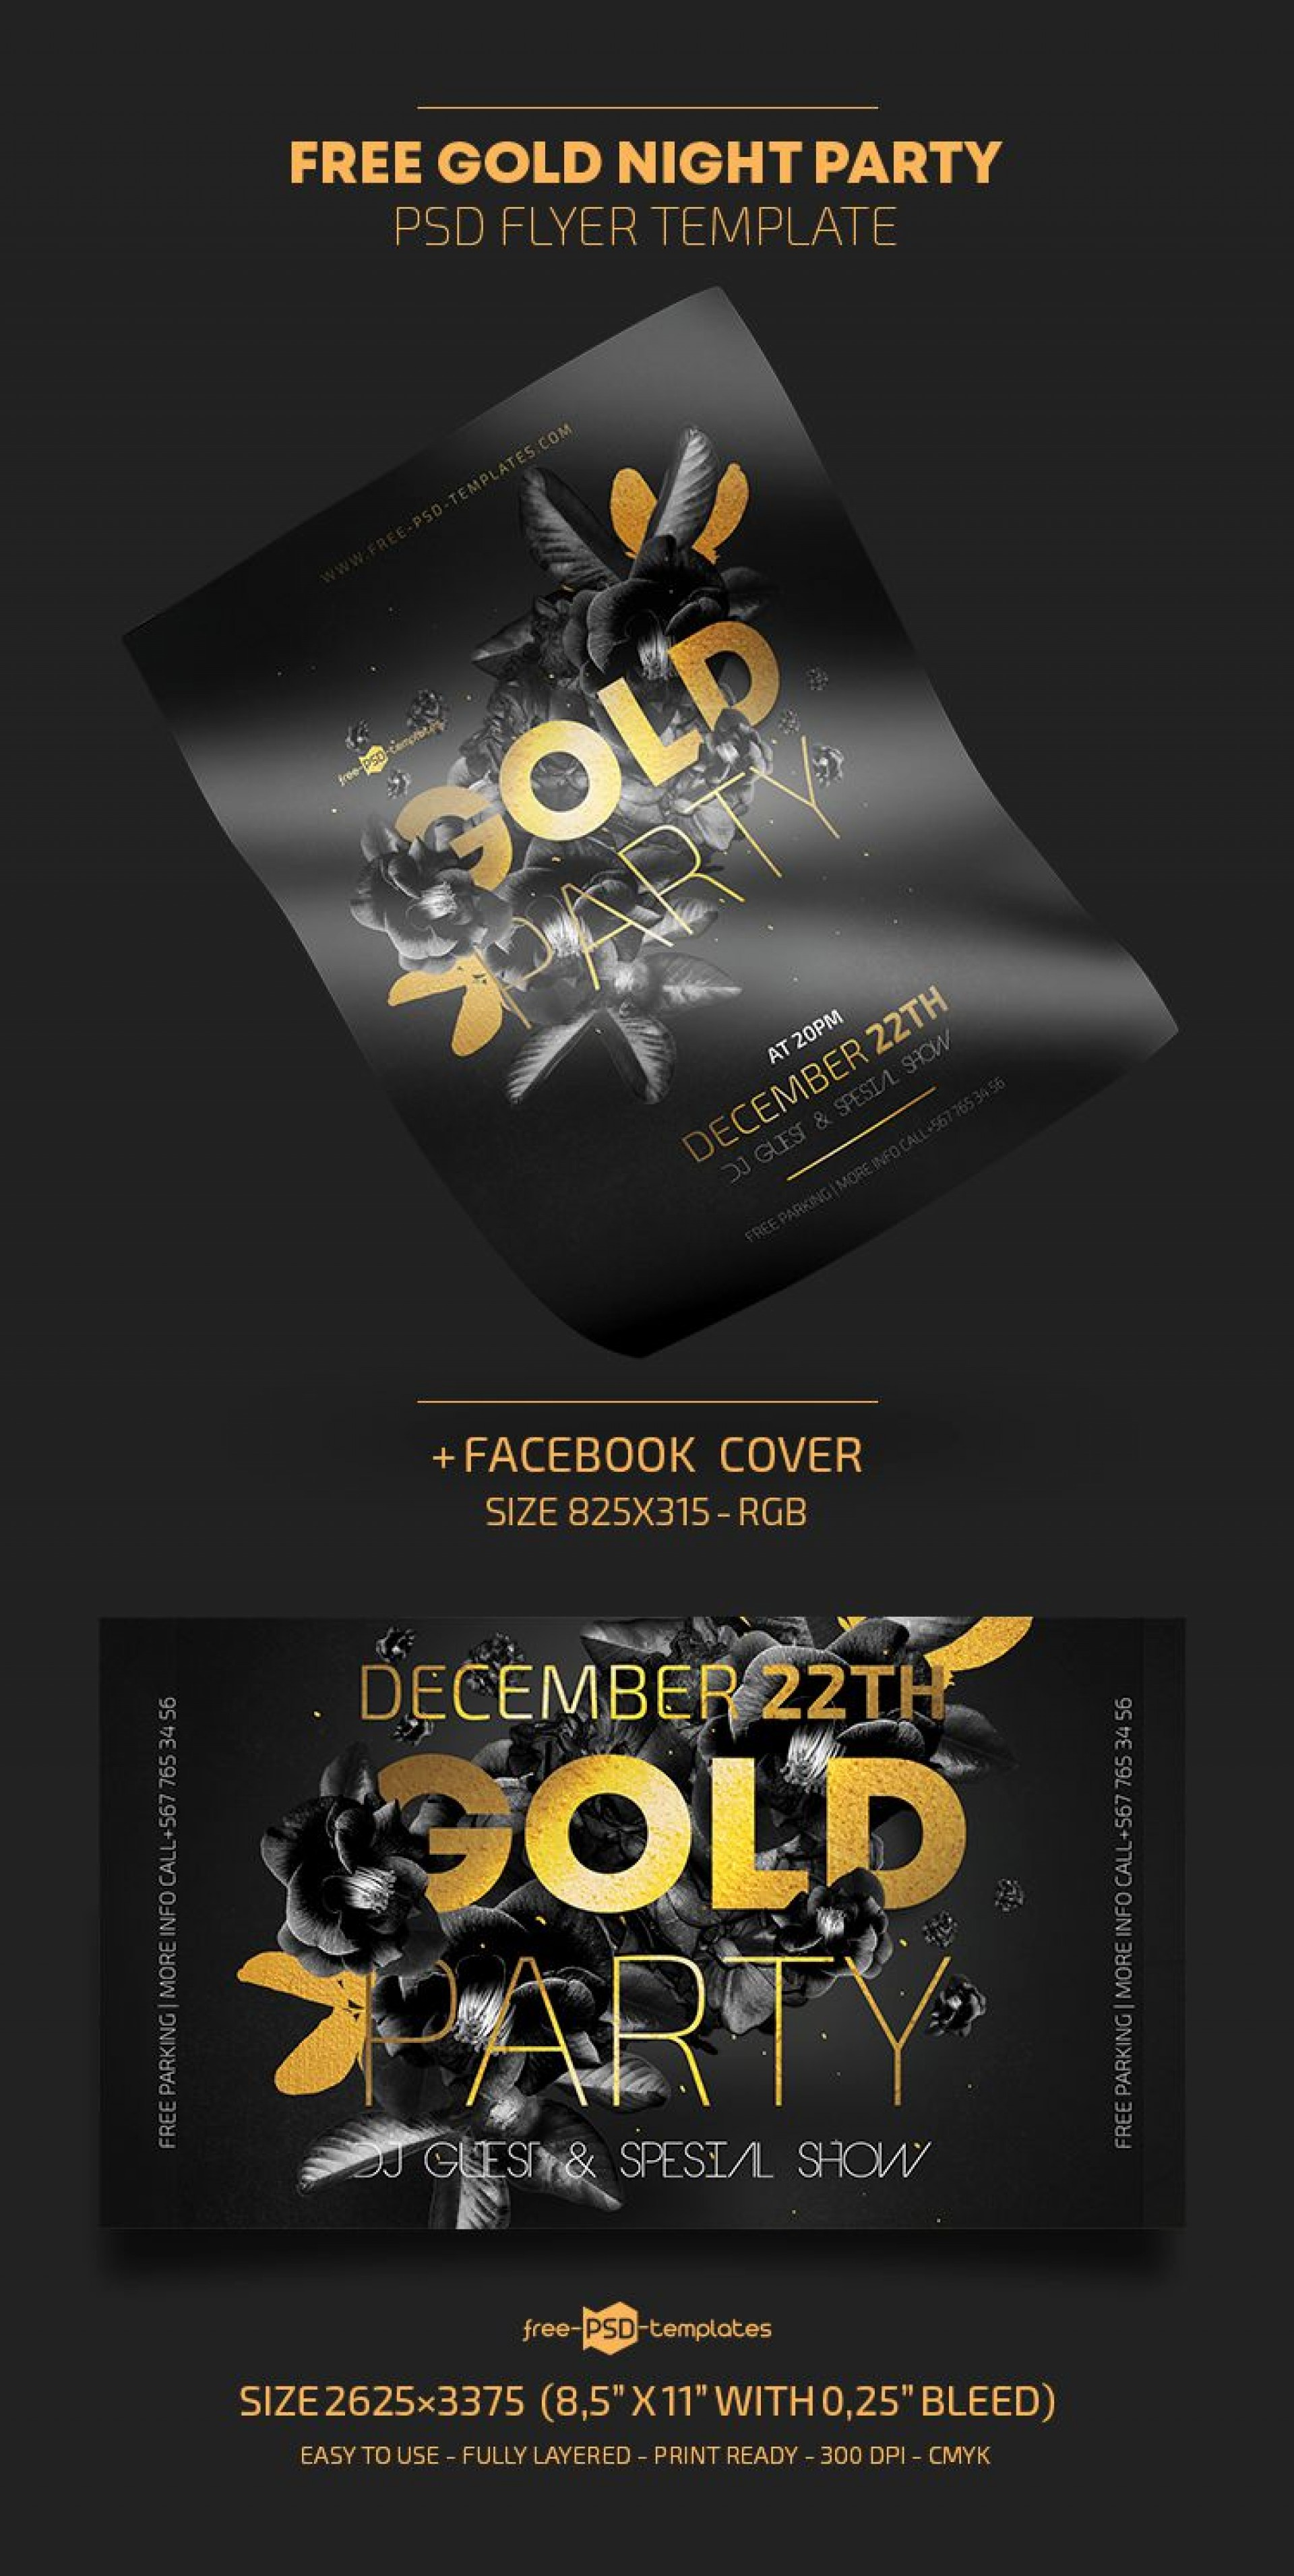 009 Marvelou Free Party Flyer Template For Photoshop Picture  Pool Psd Download1920